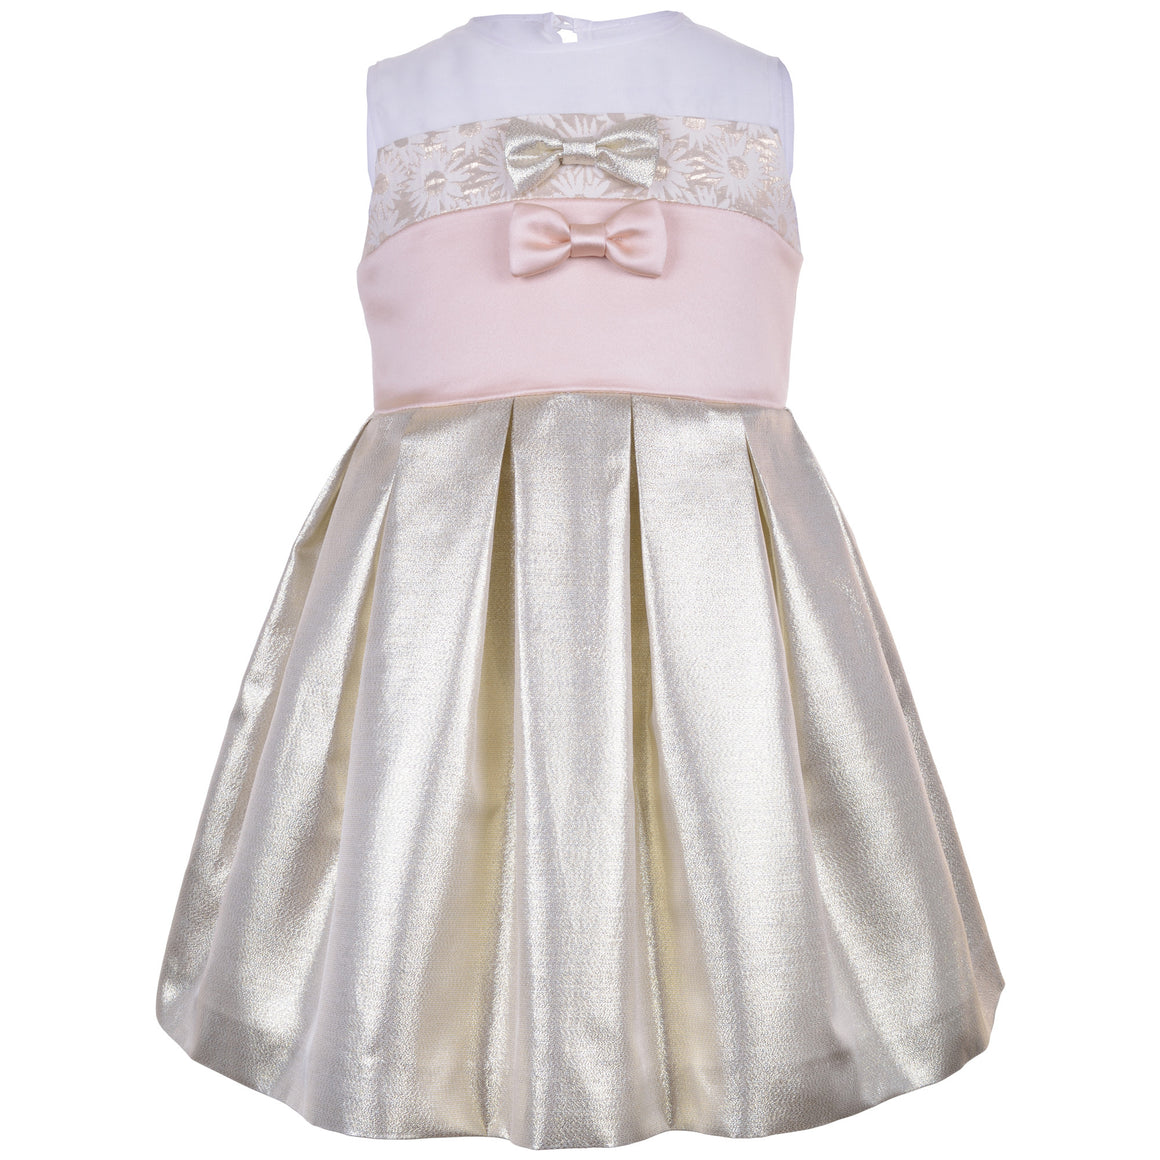 Hucklebones - Girls Metallic Gold Bodice Dress | Party Dresses | Bon Bon Tresor